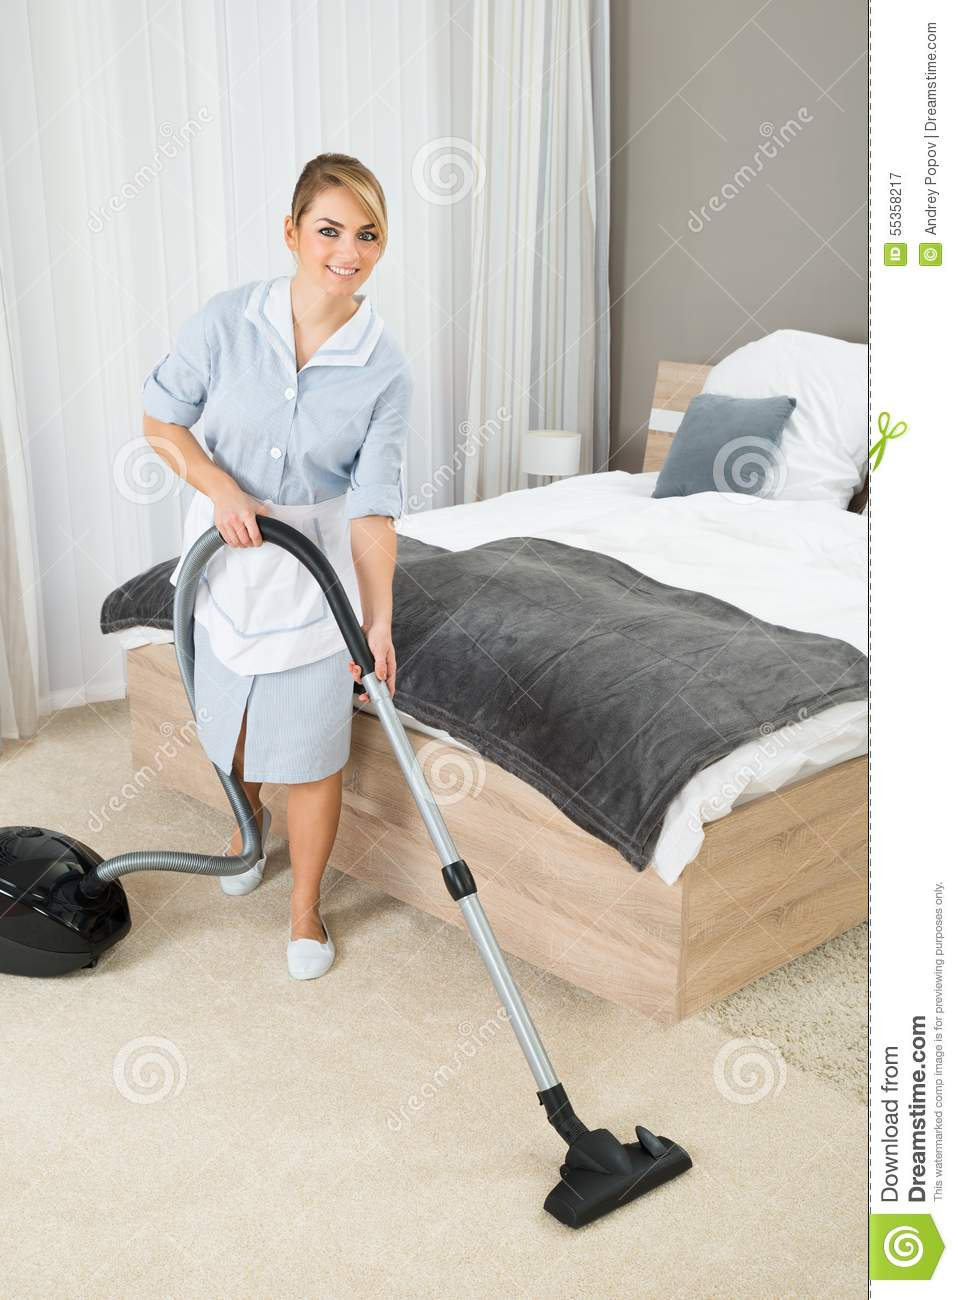 Housekeeper Cleaning With Vacuum Cleaner Stock Photo